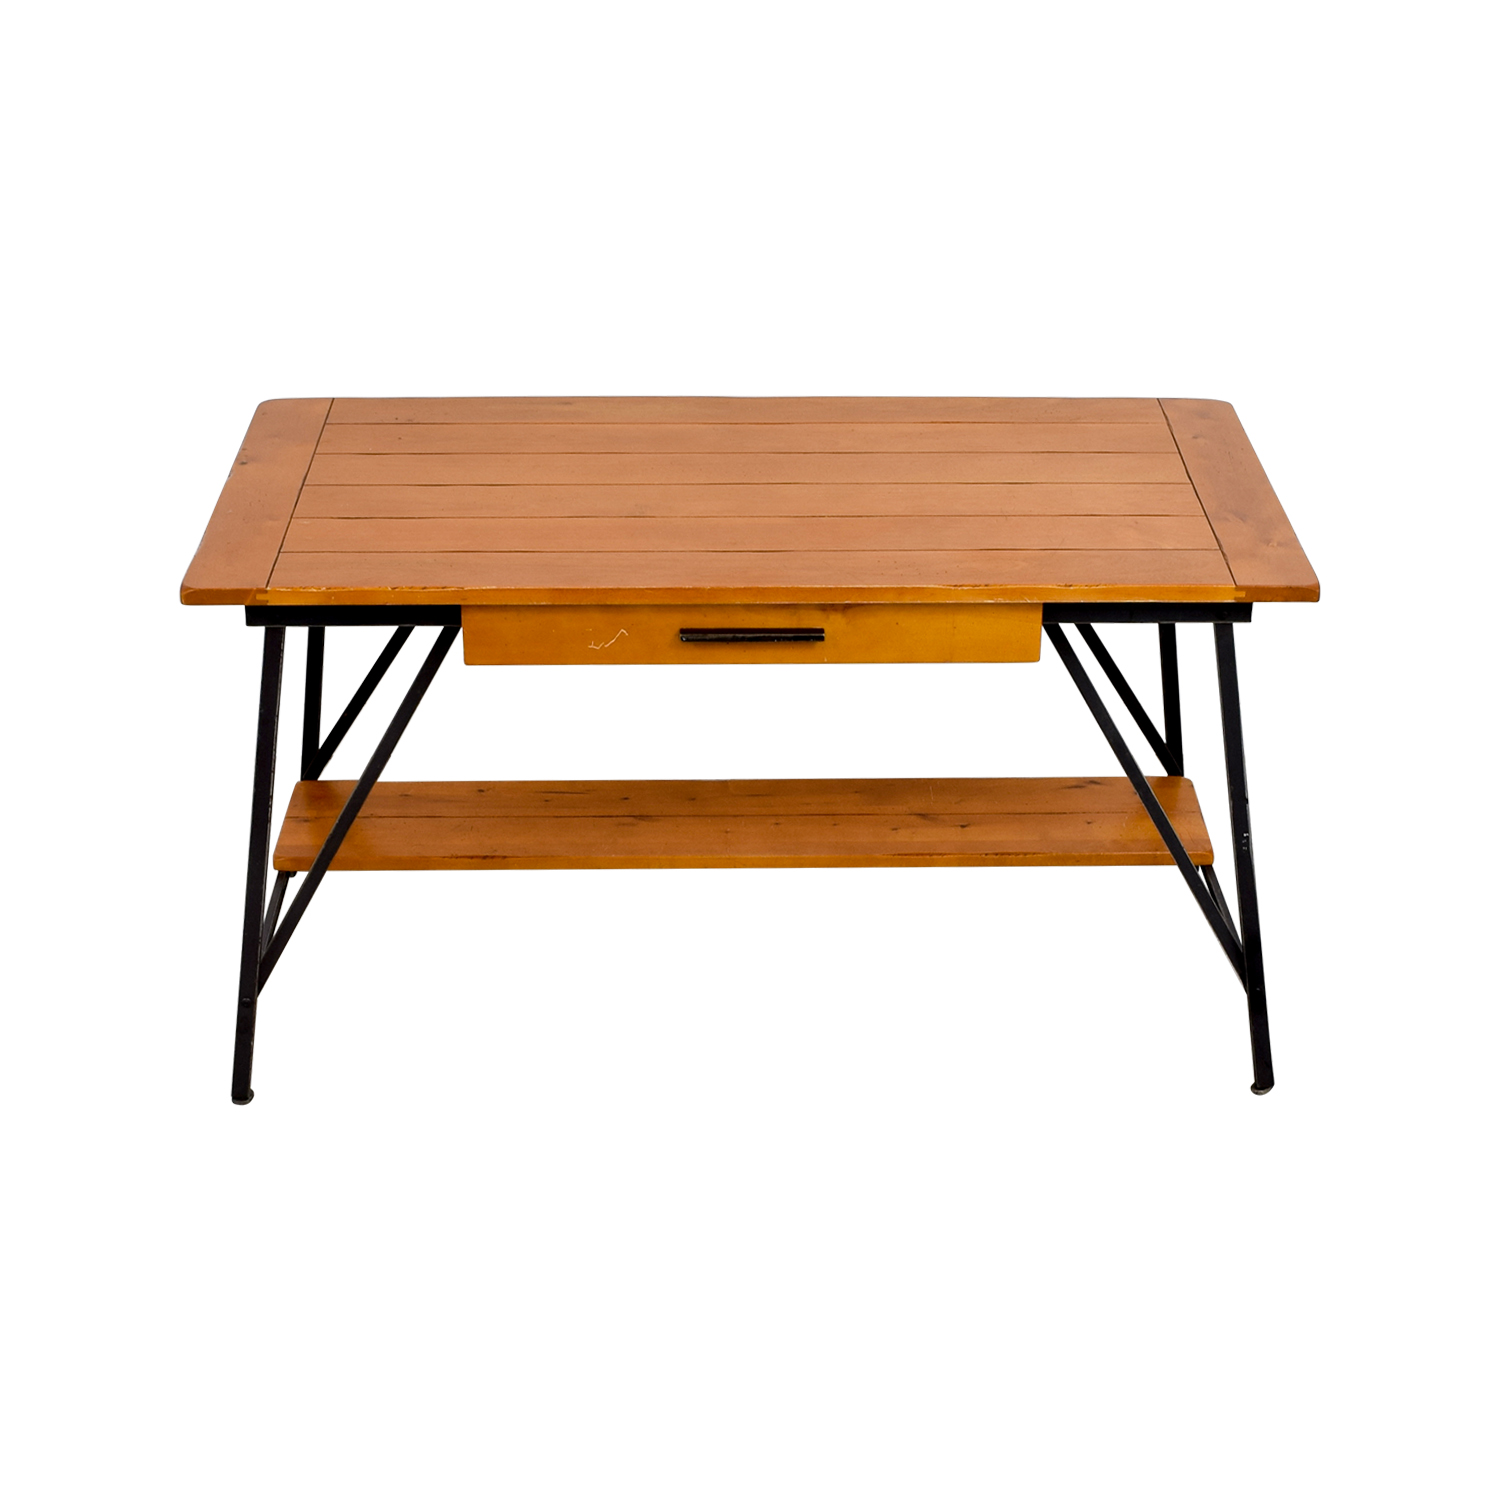 shop Pottery Barn Pottery Barn Knotty Adler Desk online